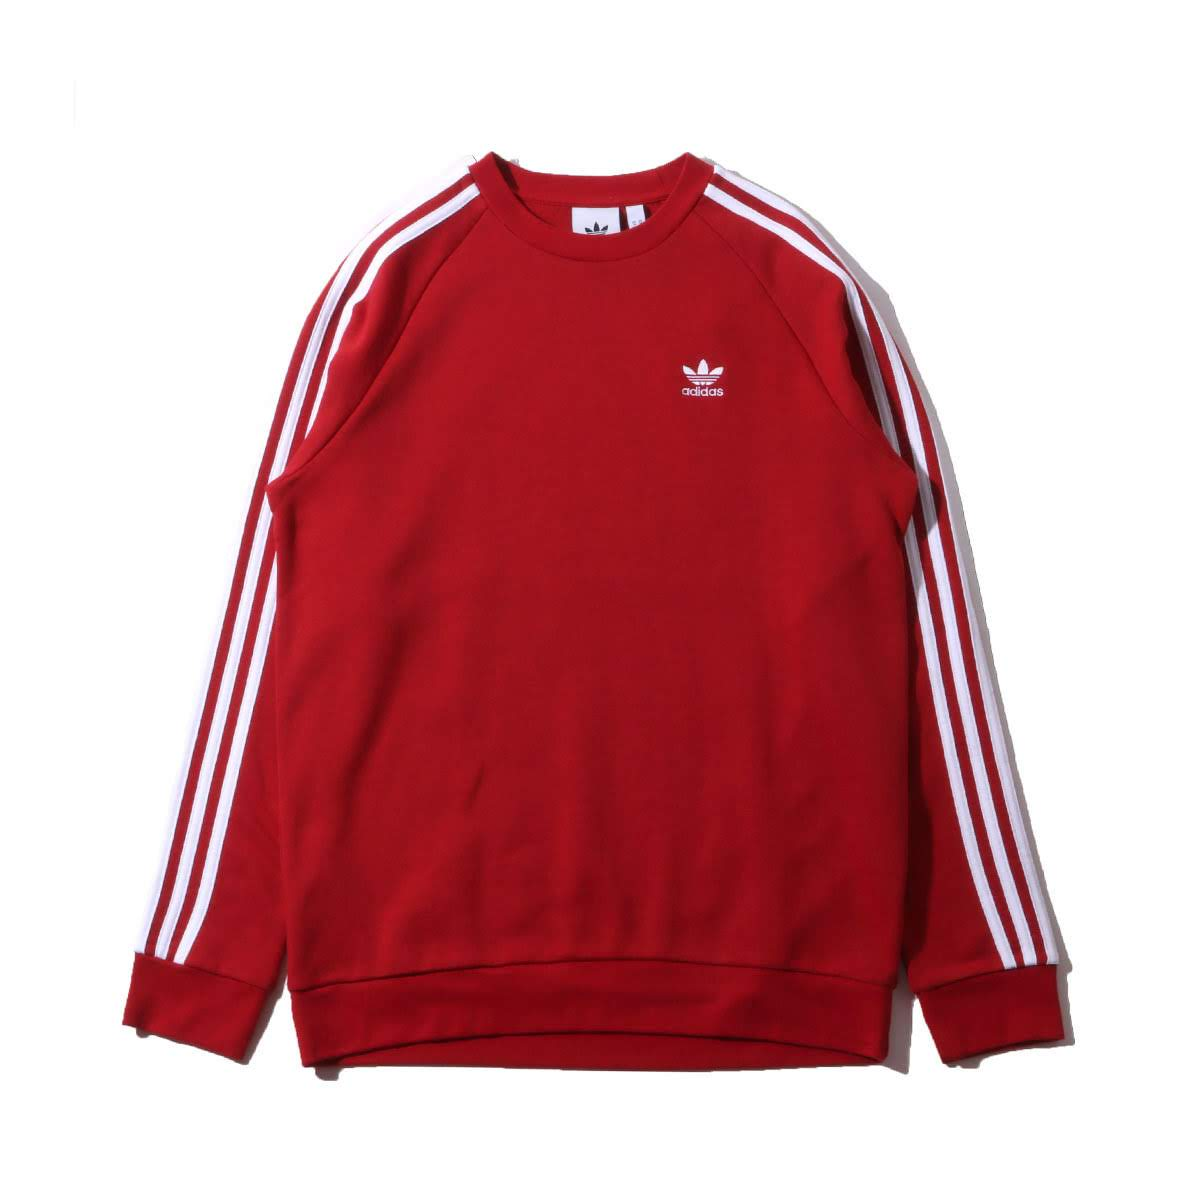 adidas - sweat crewneck 3 stripes